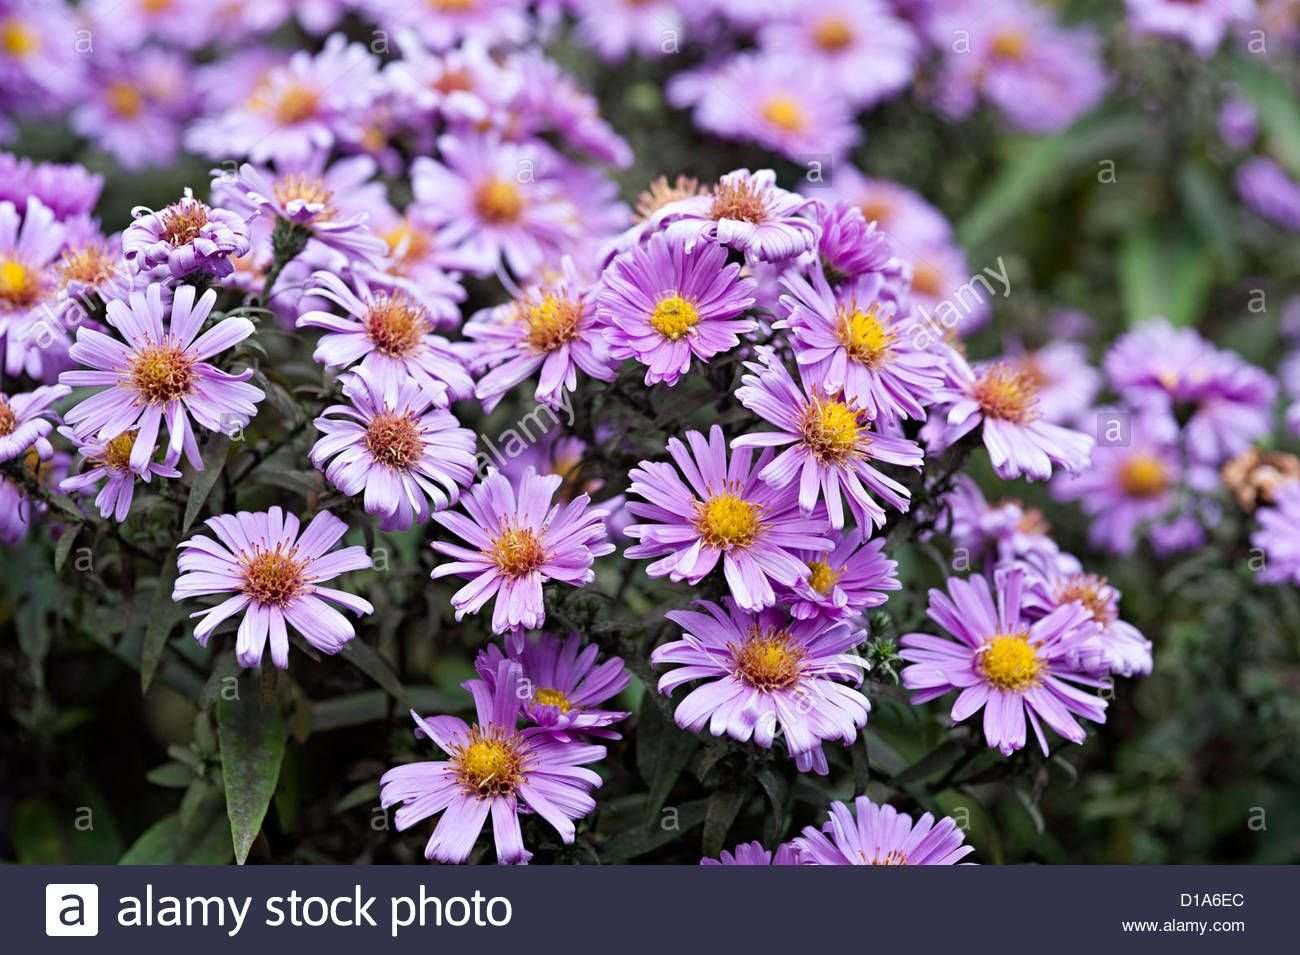 Michaelmas Daisy Aster Purple Flower In A Uk Garden Stock Photo Purple Flowers Michaelmas Daisy Flowers